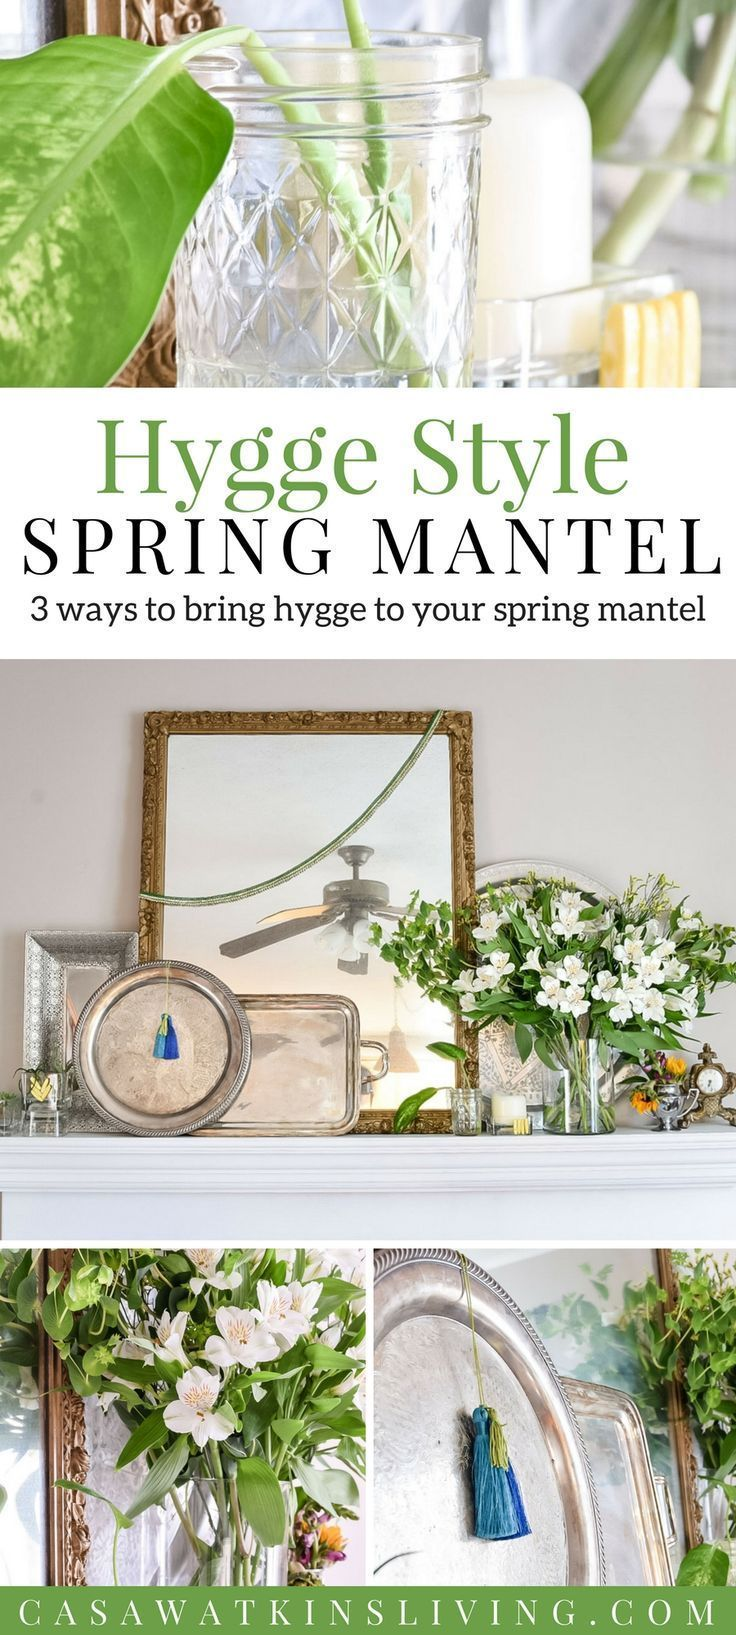 Hygge style for spring